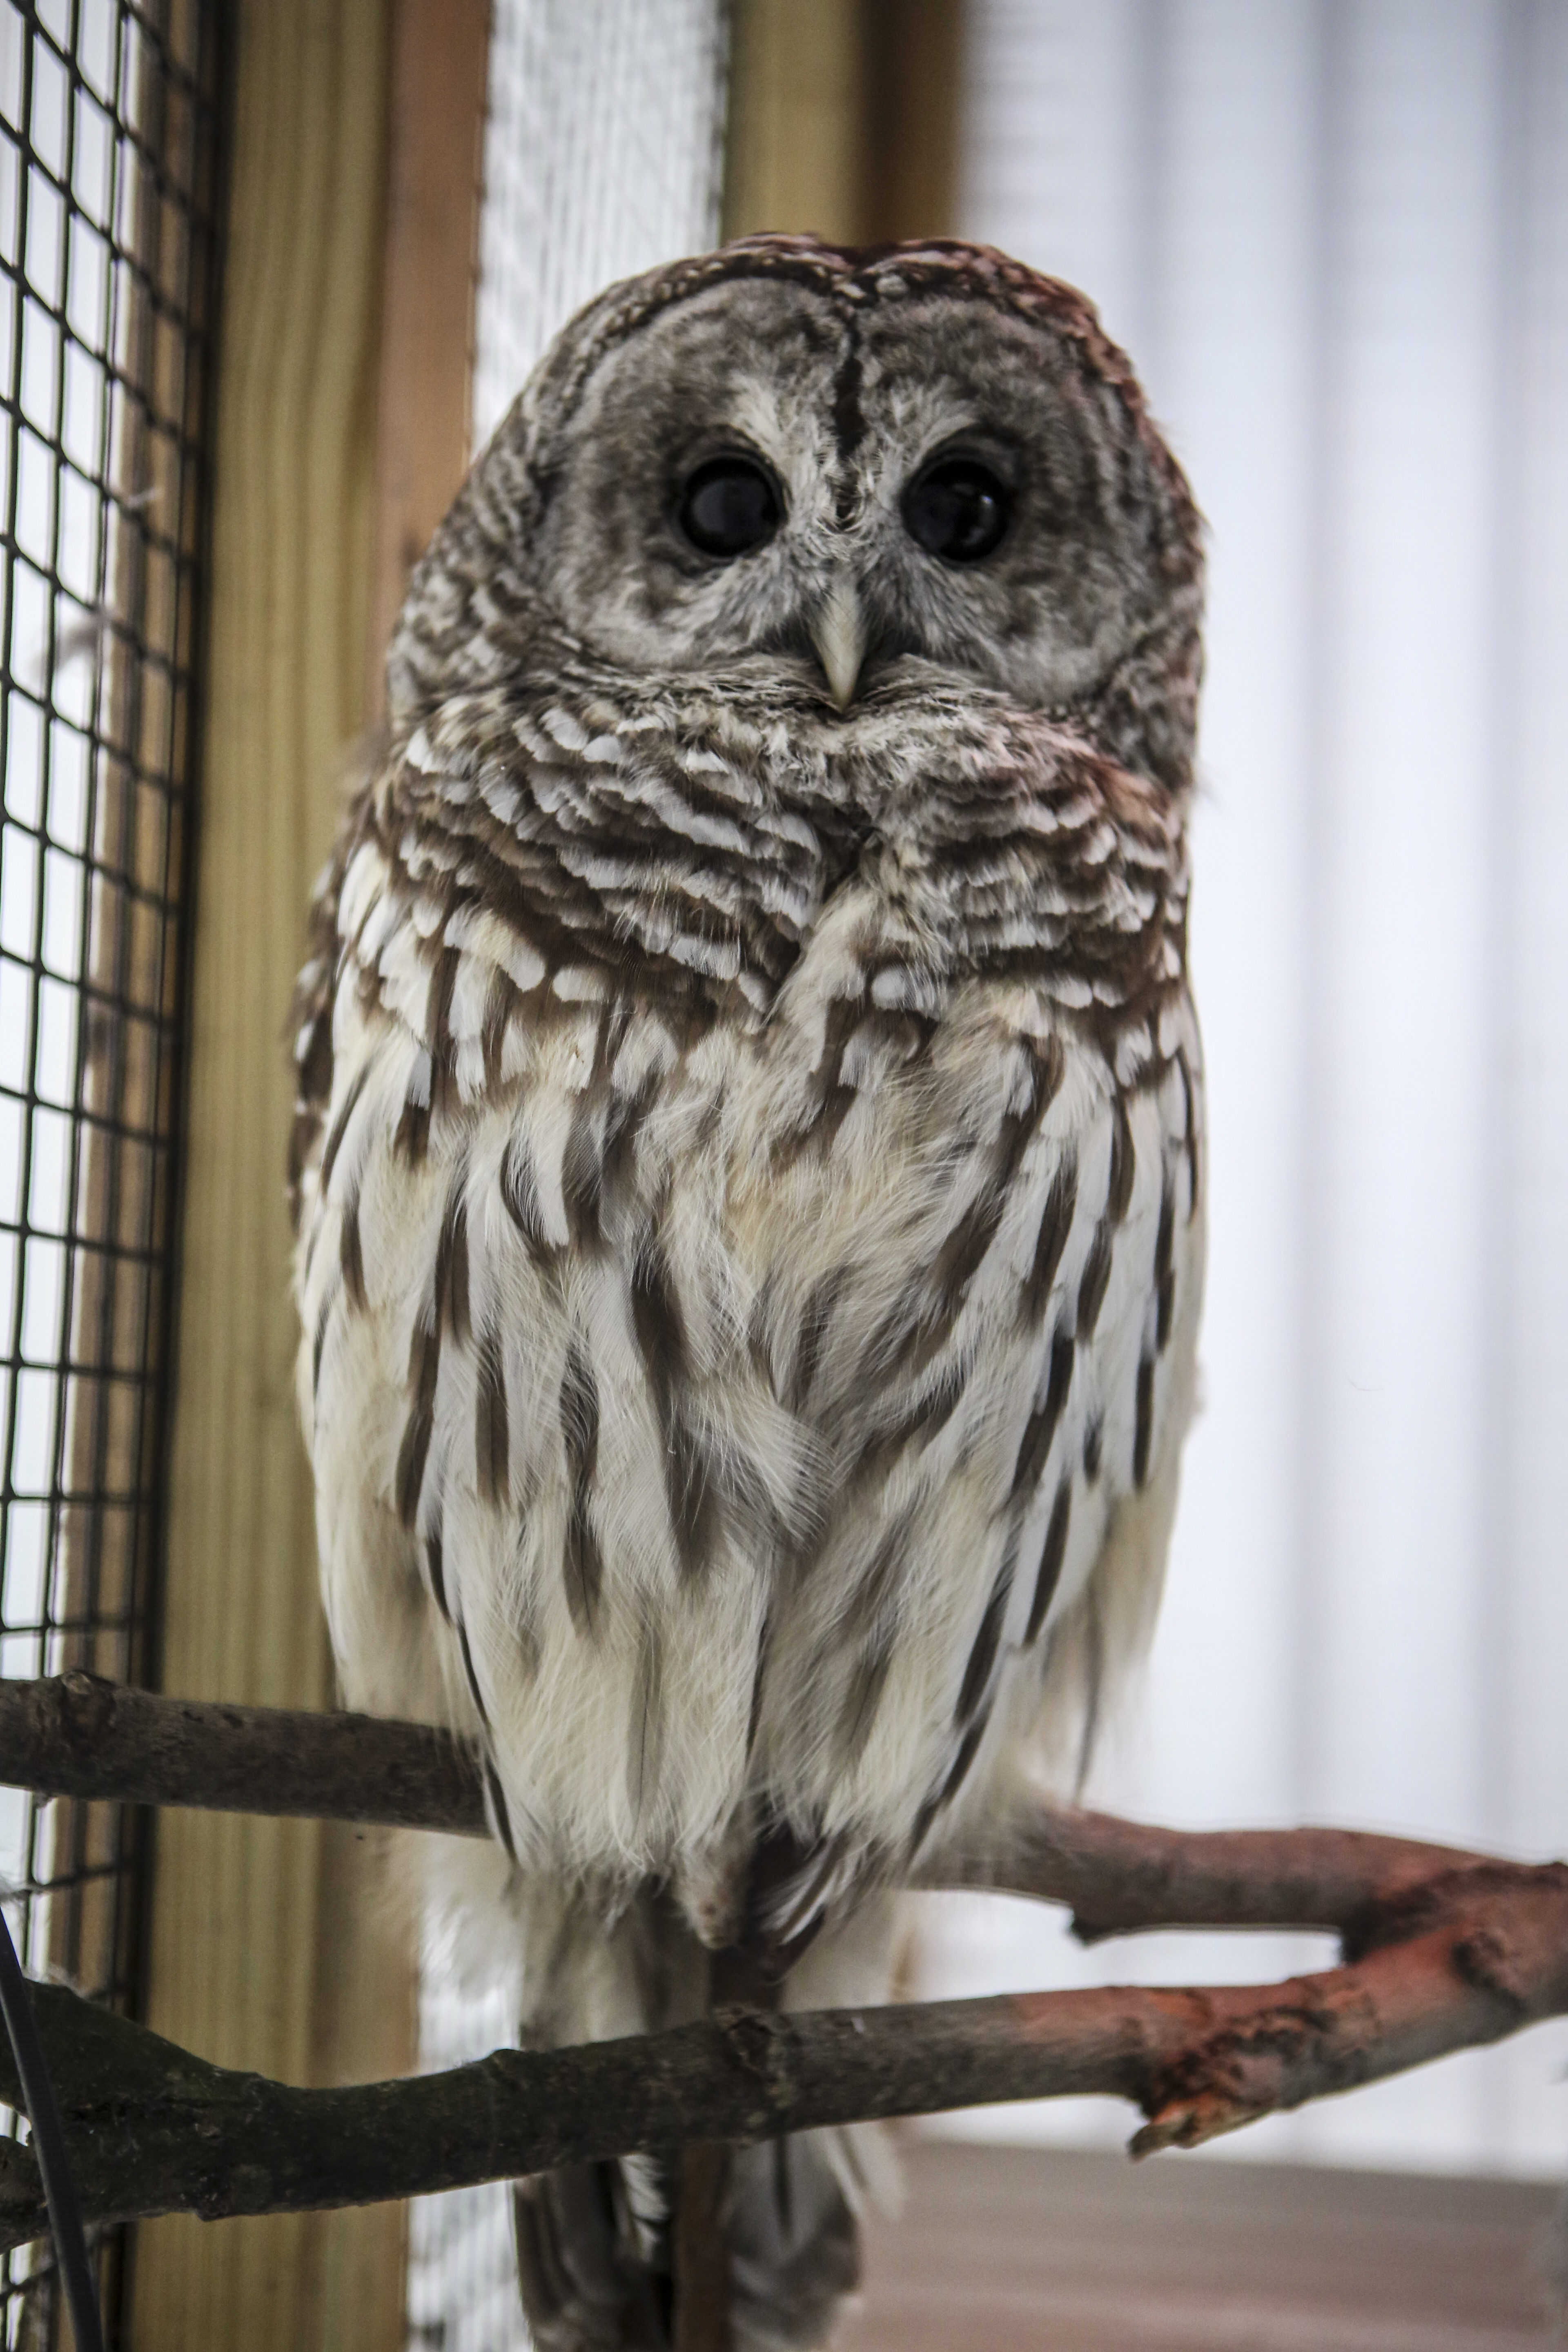 A close-up of an owl. Live animal encounters will happen throughout the day.